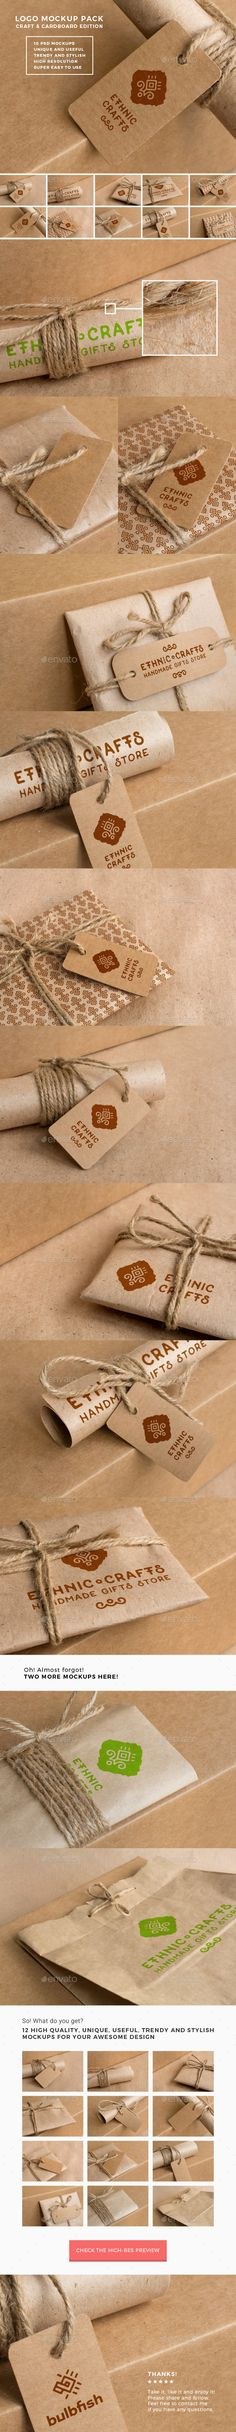 Logo Mockup Pack. Craft and Cardboard Edition - Logo Product Mock-Ups